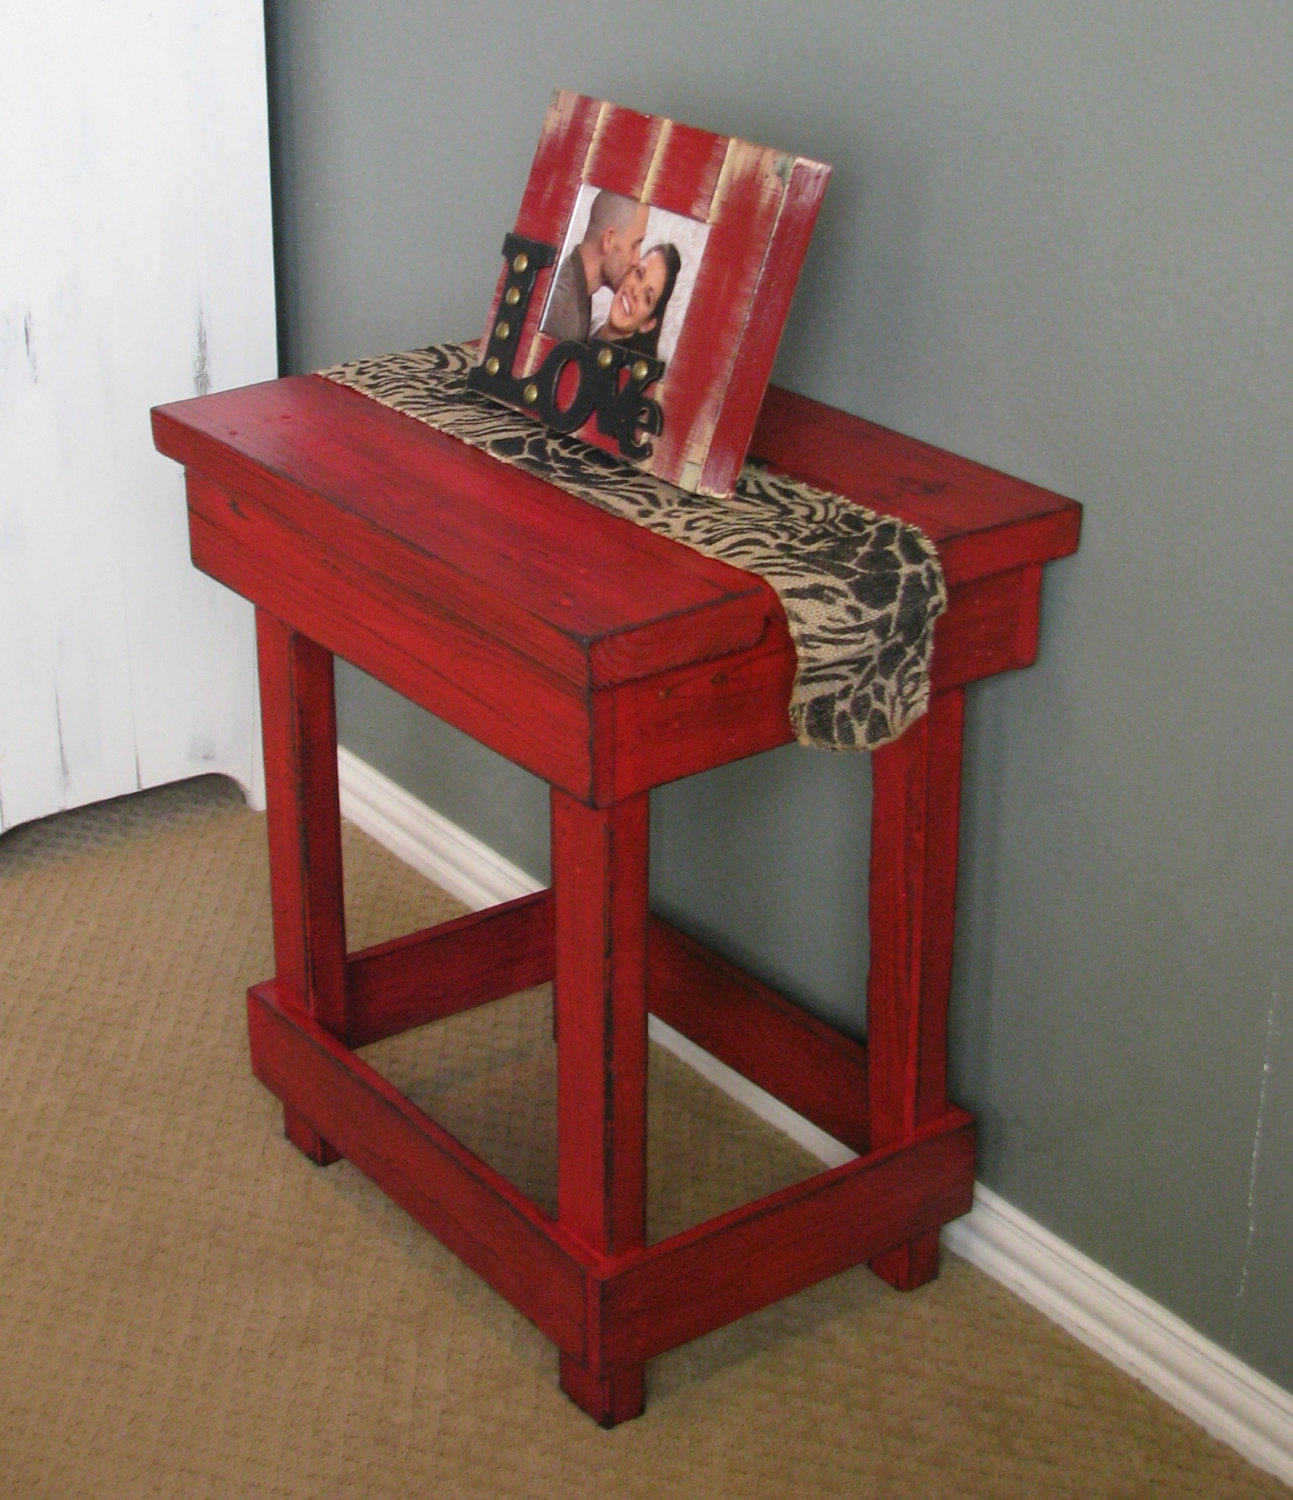 Medium Red End Table, Side Table, Nightstand - Red